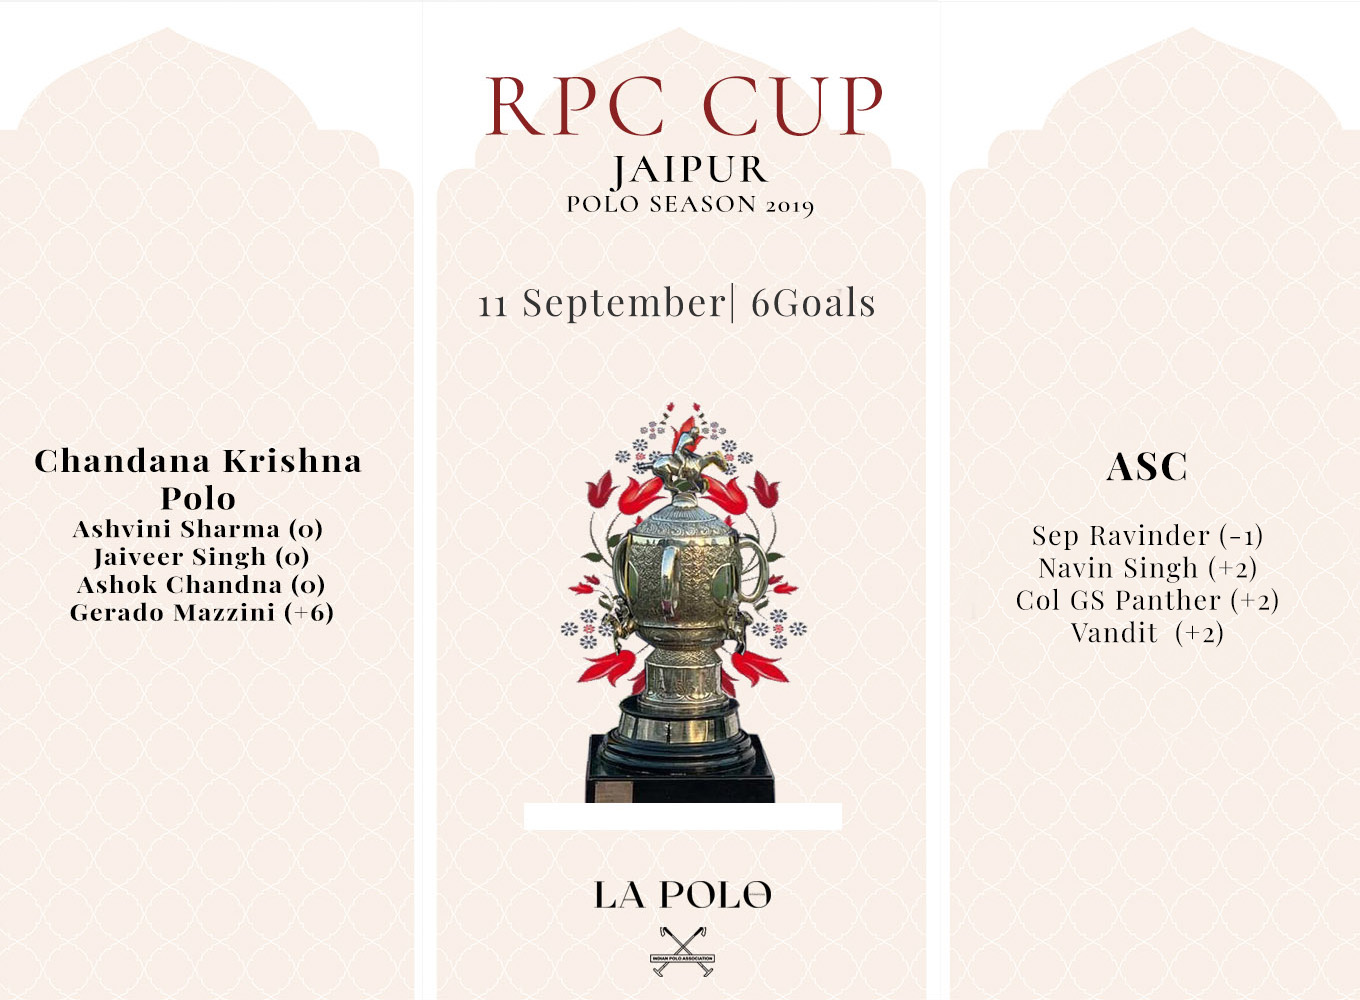 jaipur polo season 2019